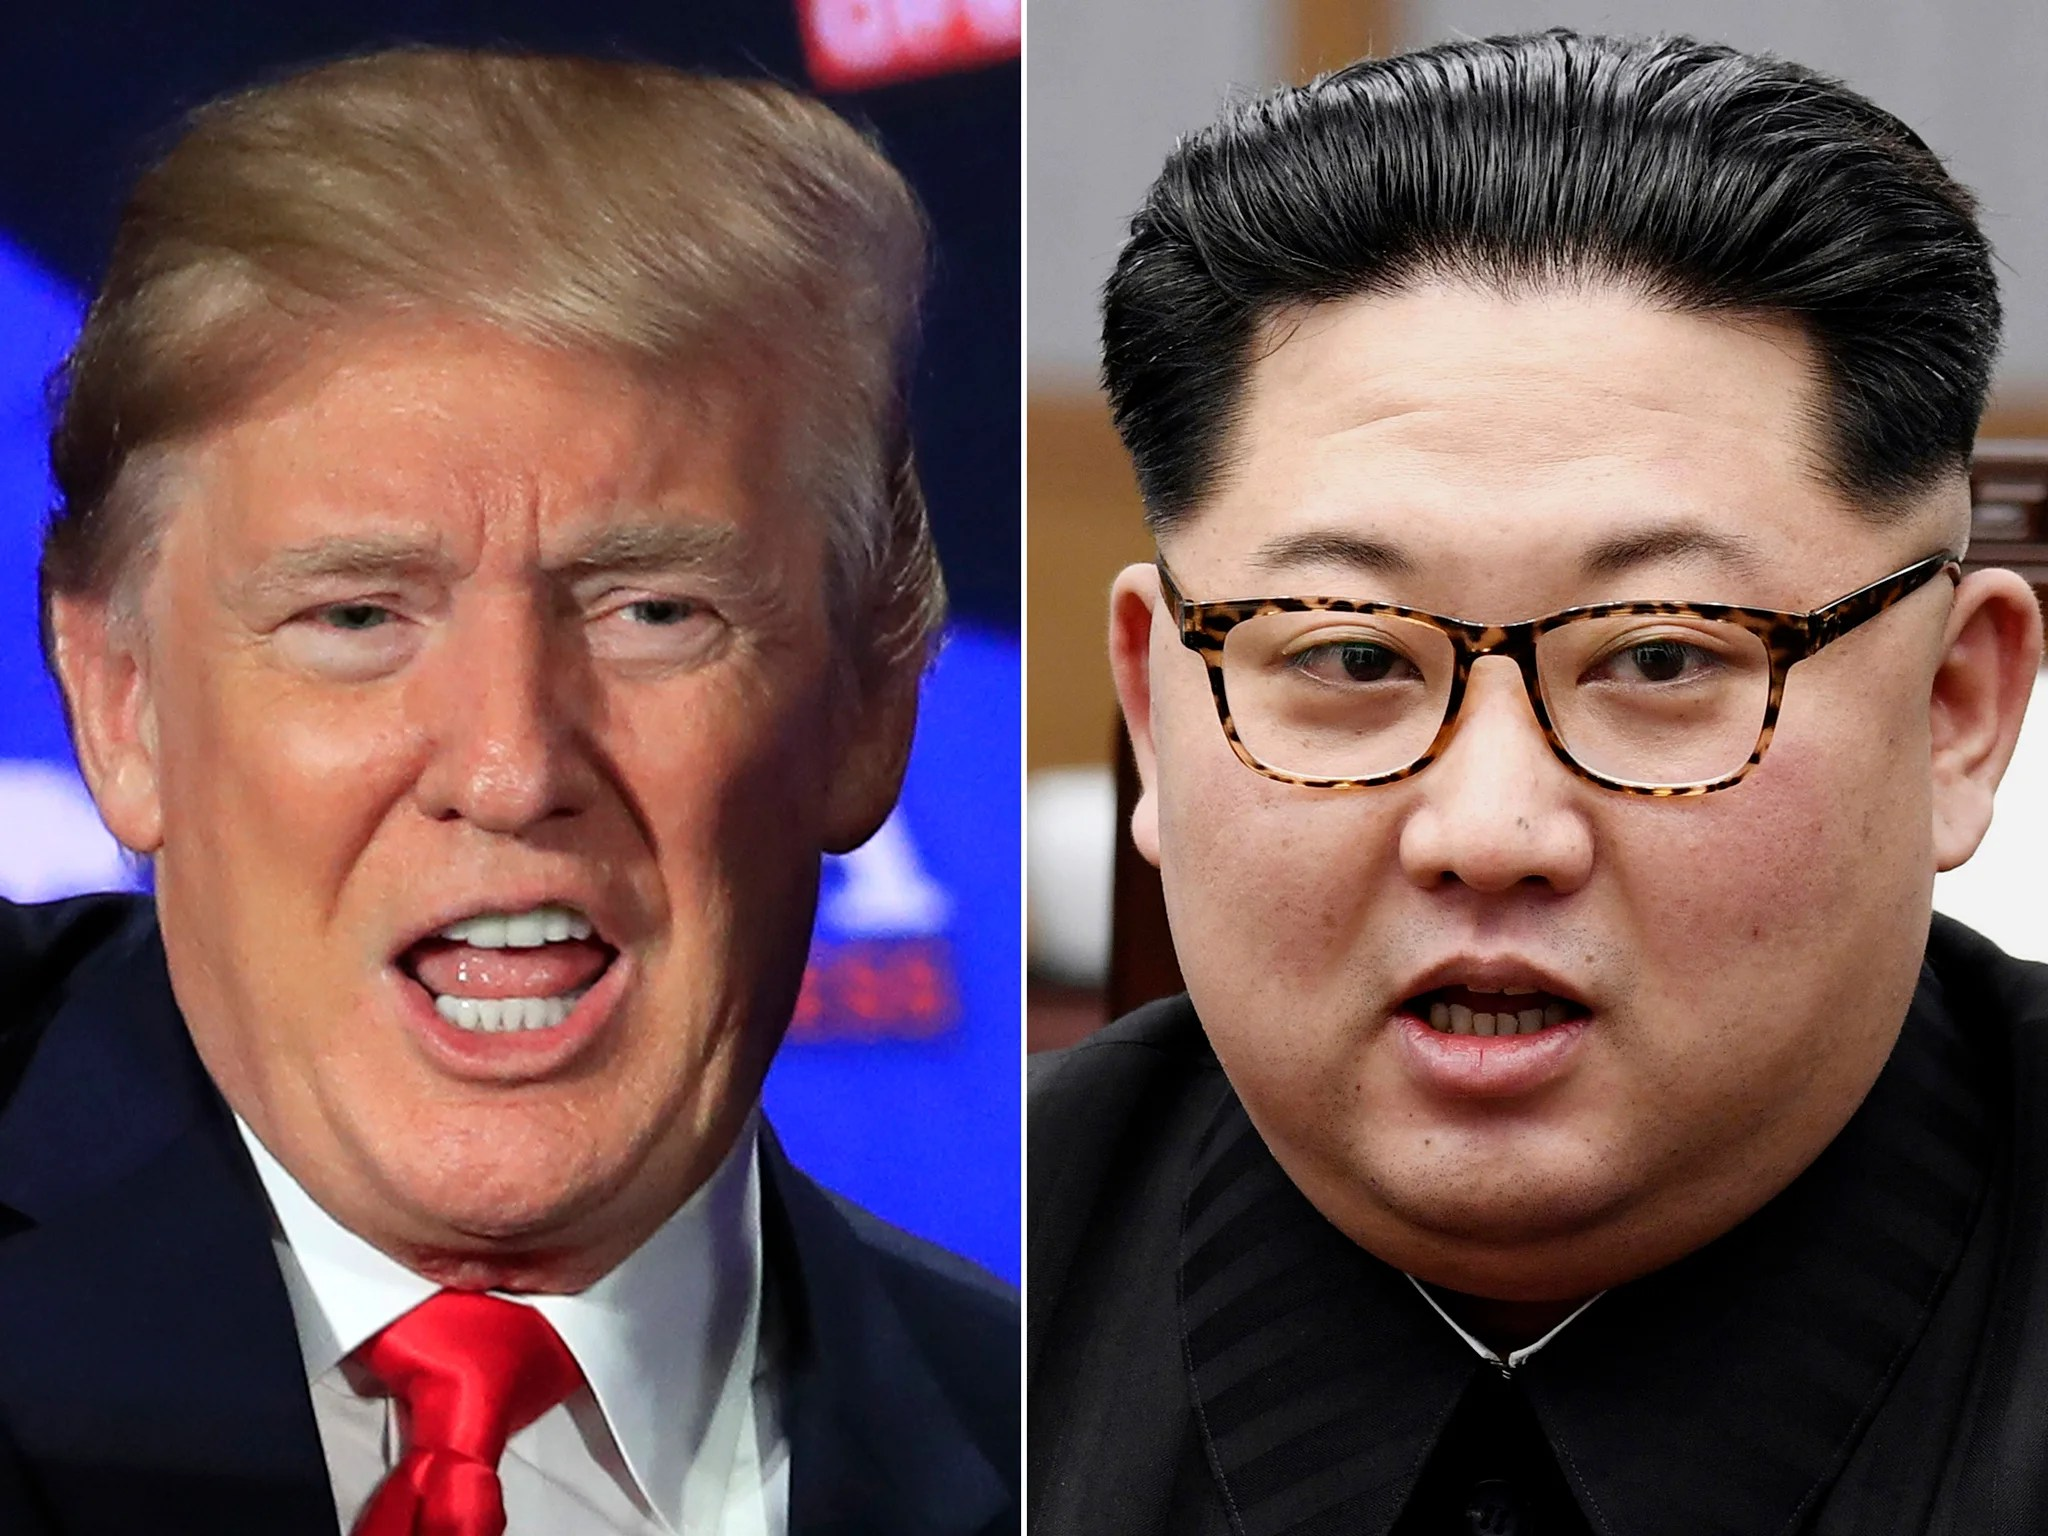 Trump Made A Savvy Psychological Evaluation Of Kim Jong-Un – So Should We  Trust His Judgment On Iran?